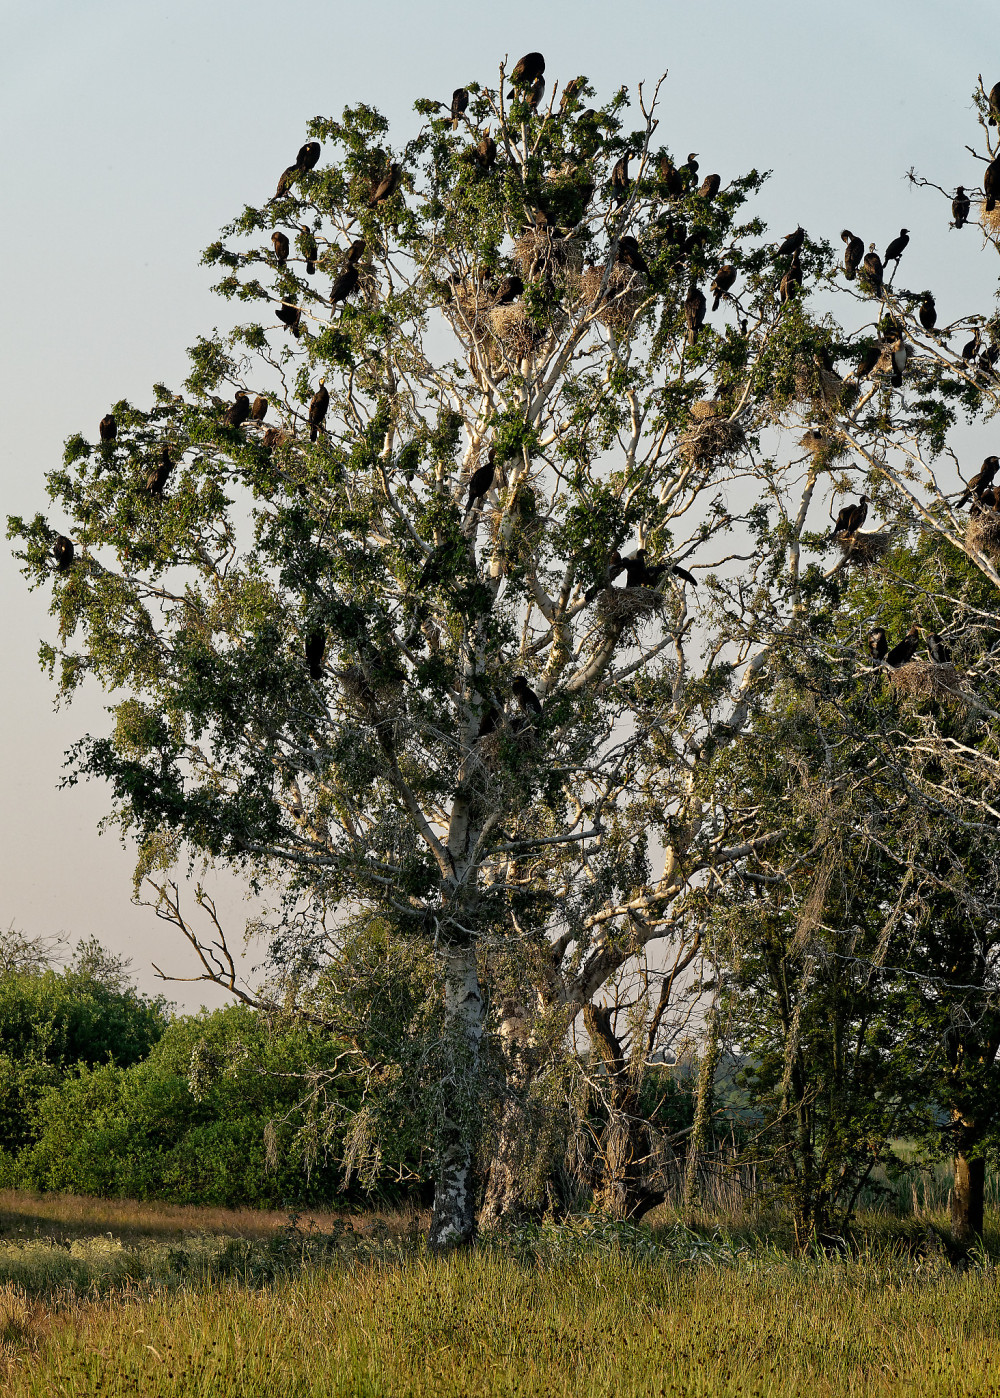 Tree of cormorant birds